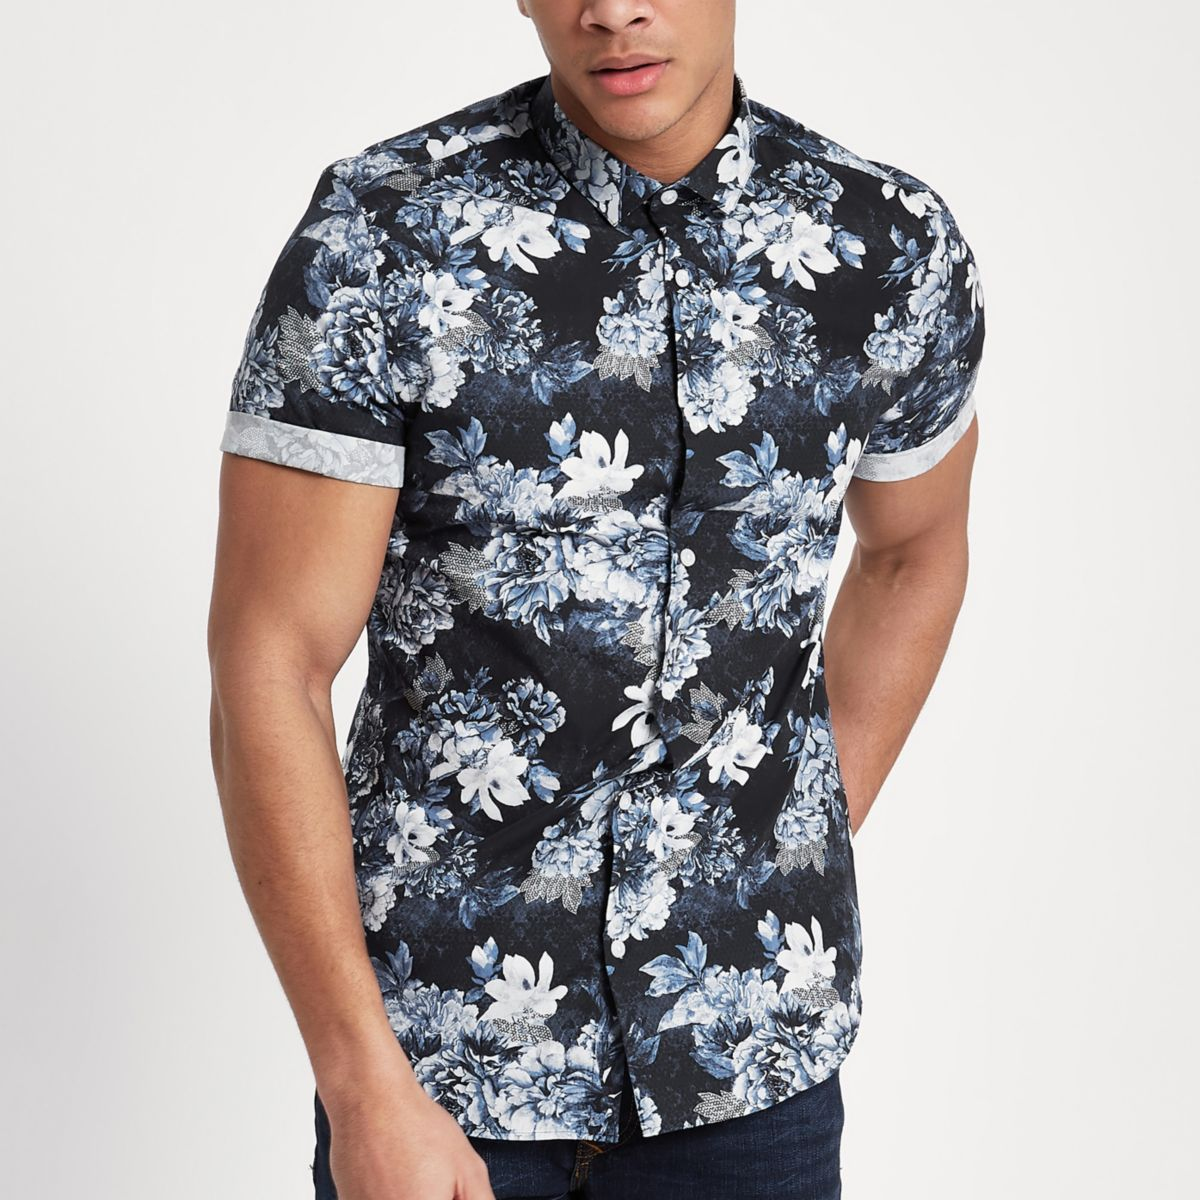 The unofficial uniform of summer, our short-sleeve shirts are the easiest way to stay cool. This cotton shirt features a tropical floral print.